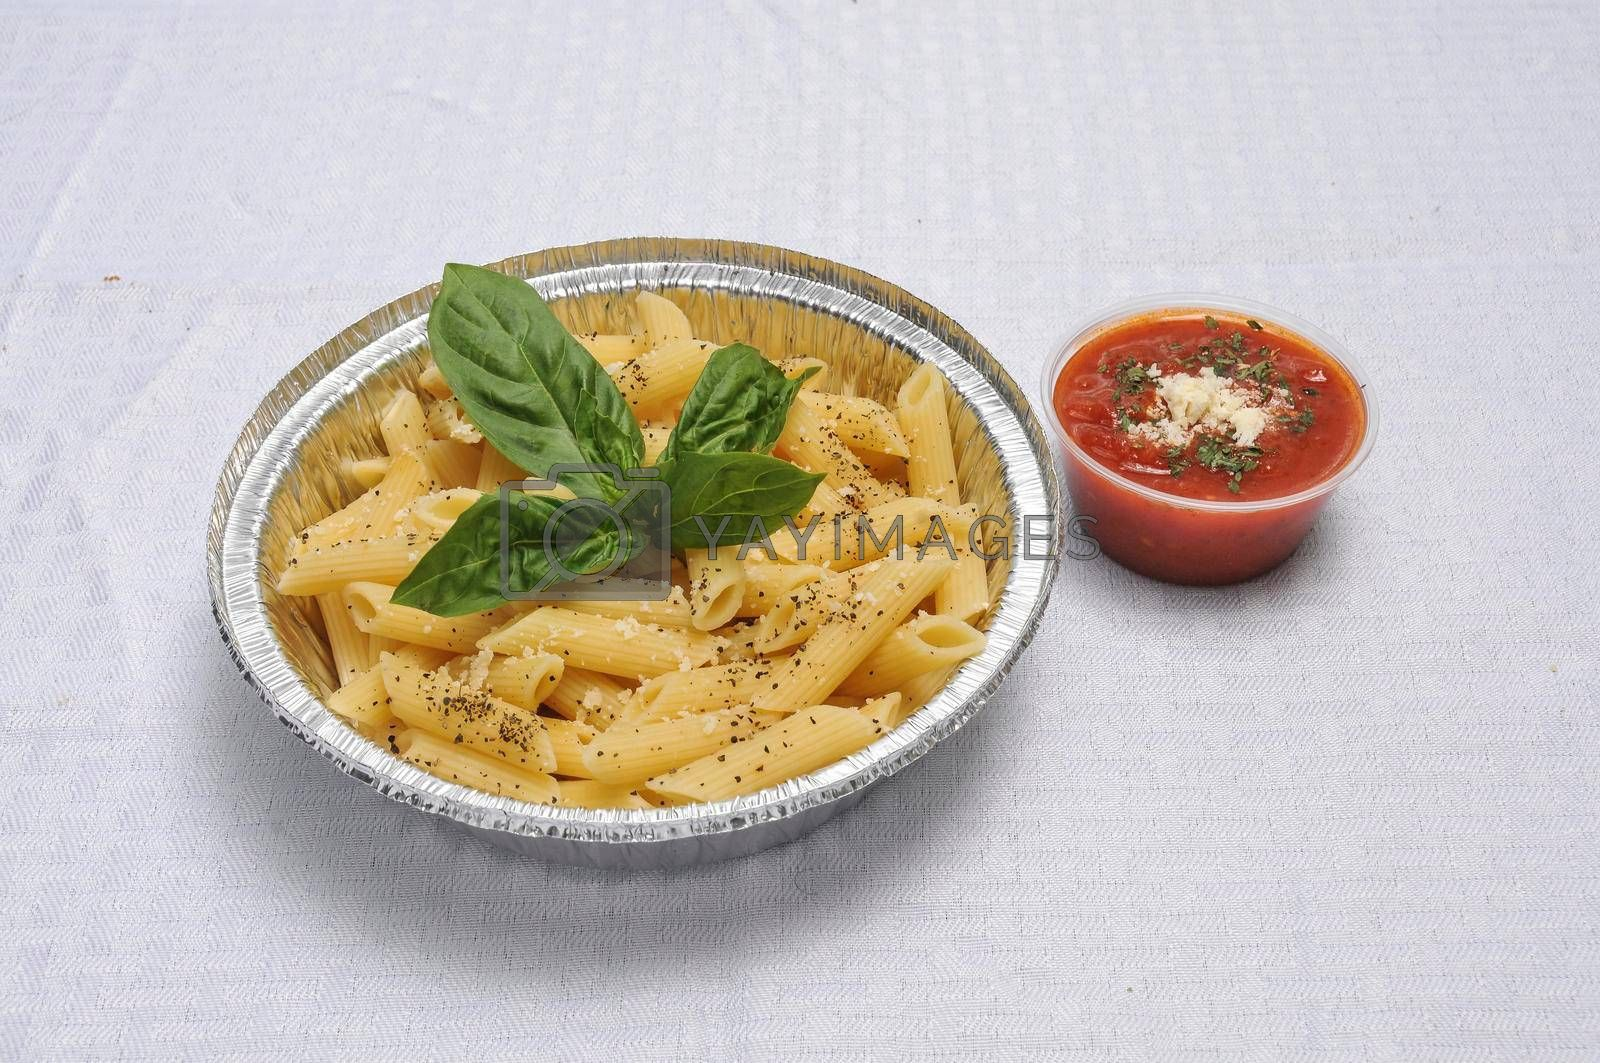 Delicious Italian dish known as penne pasta